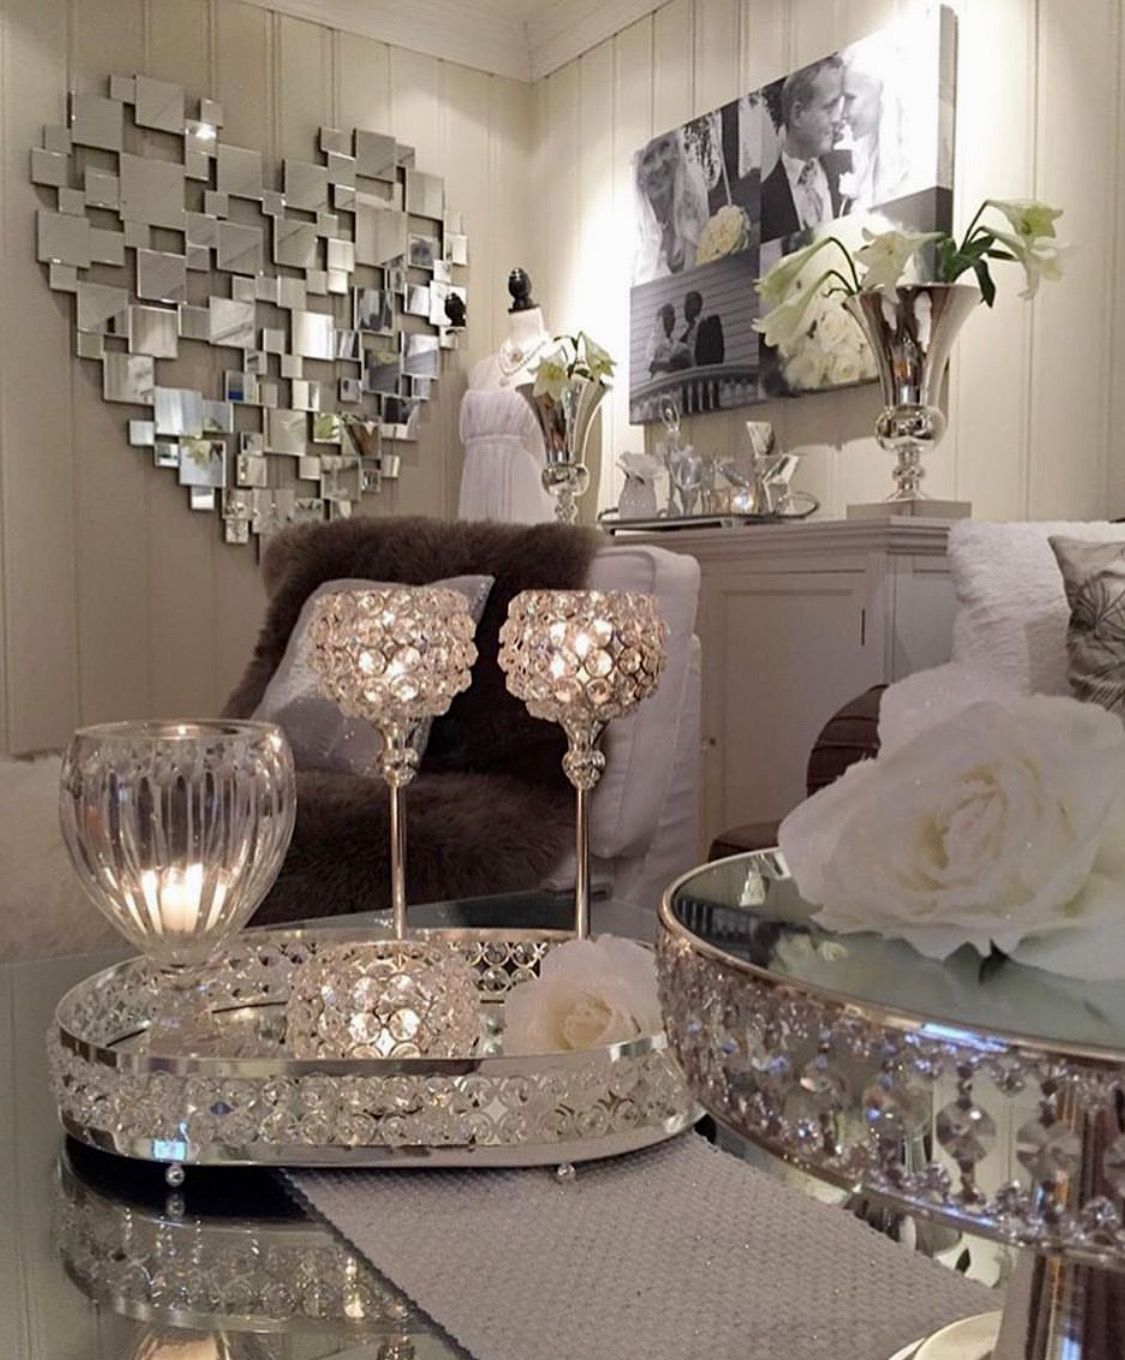 Pin By Gena Woodward On Table Vignettes Living Room Decor Decor Home Decor